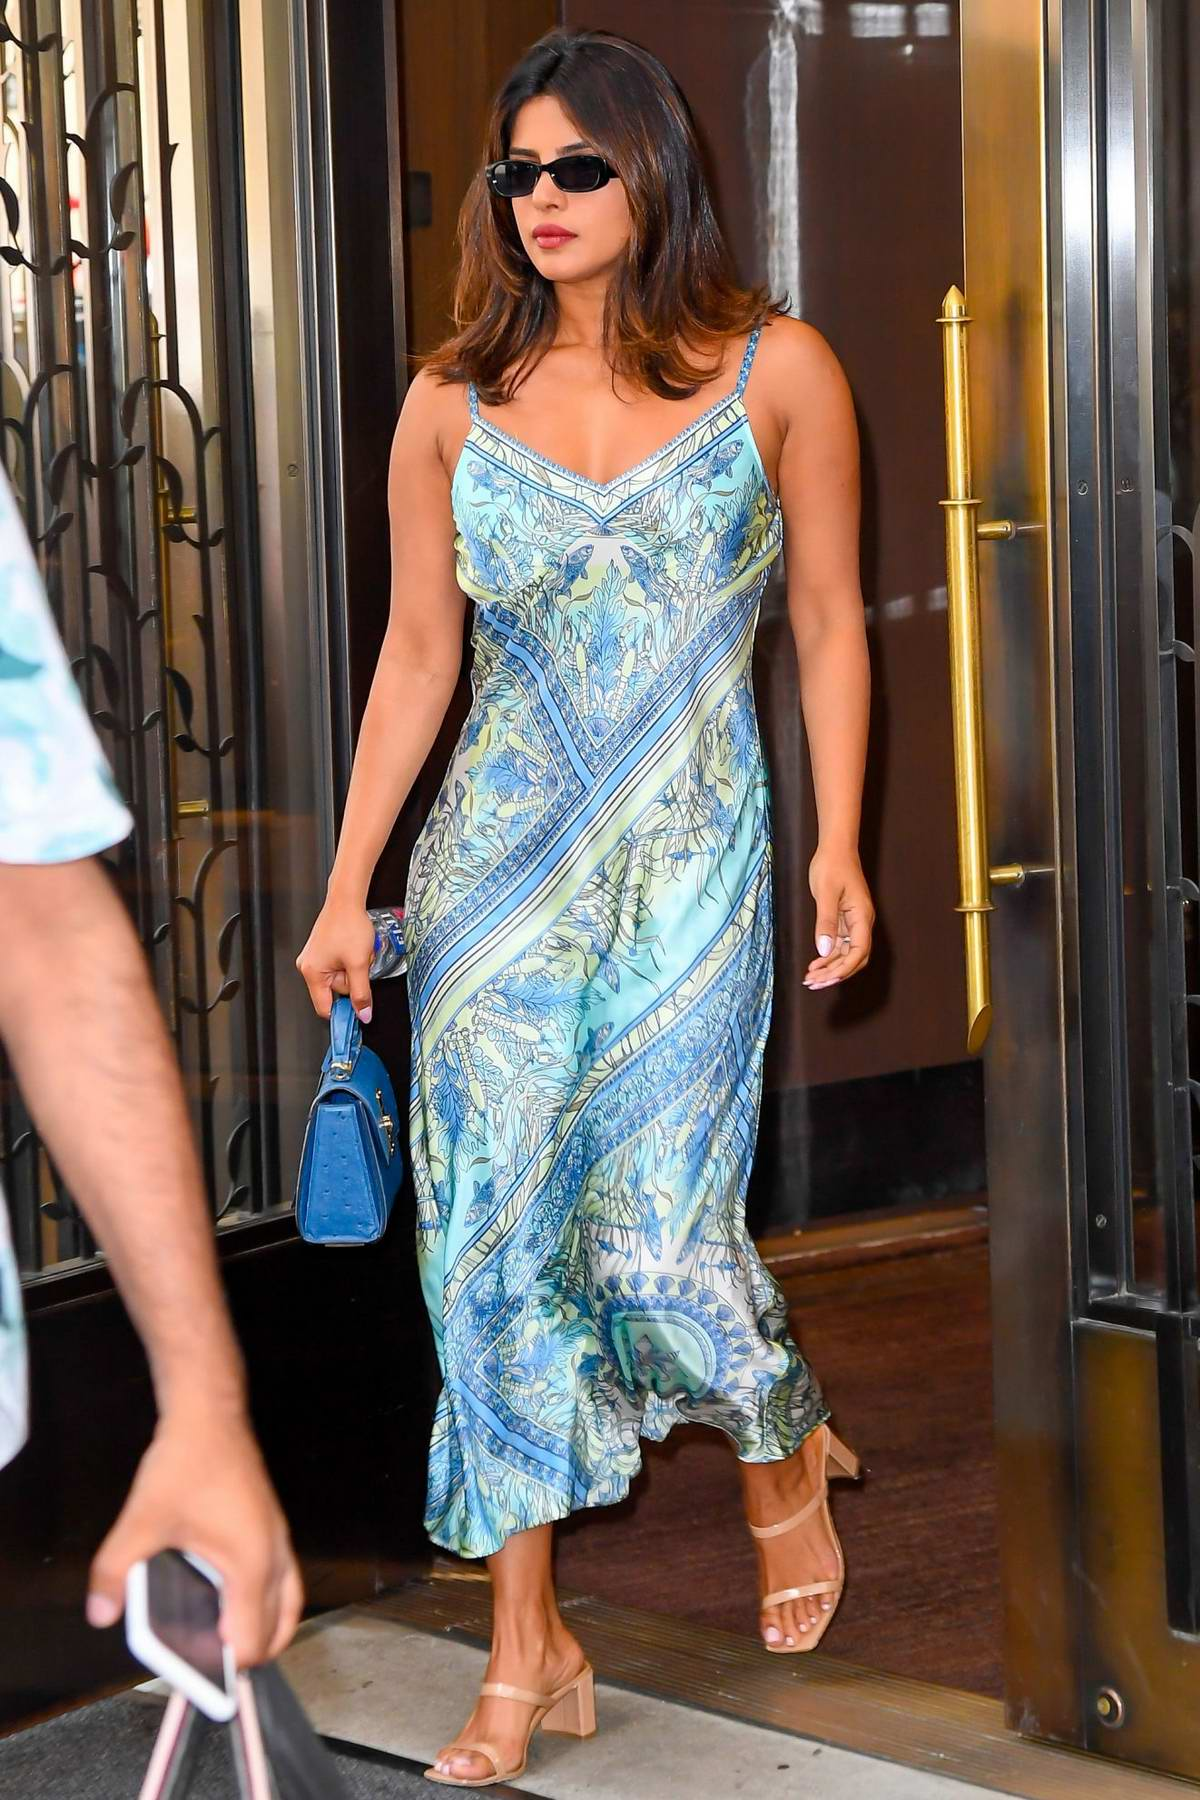 Priyanka Chopra seen wearing a blue floral print dress as she heads out in New York City